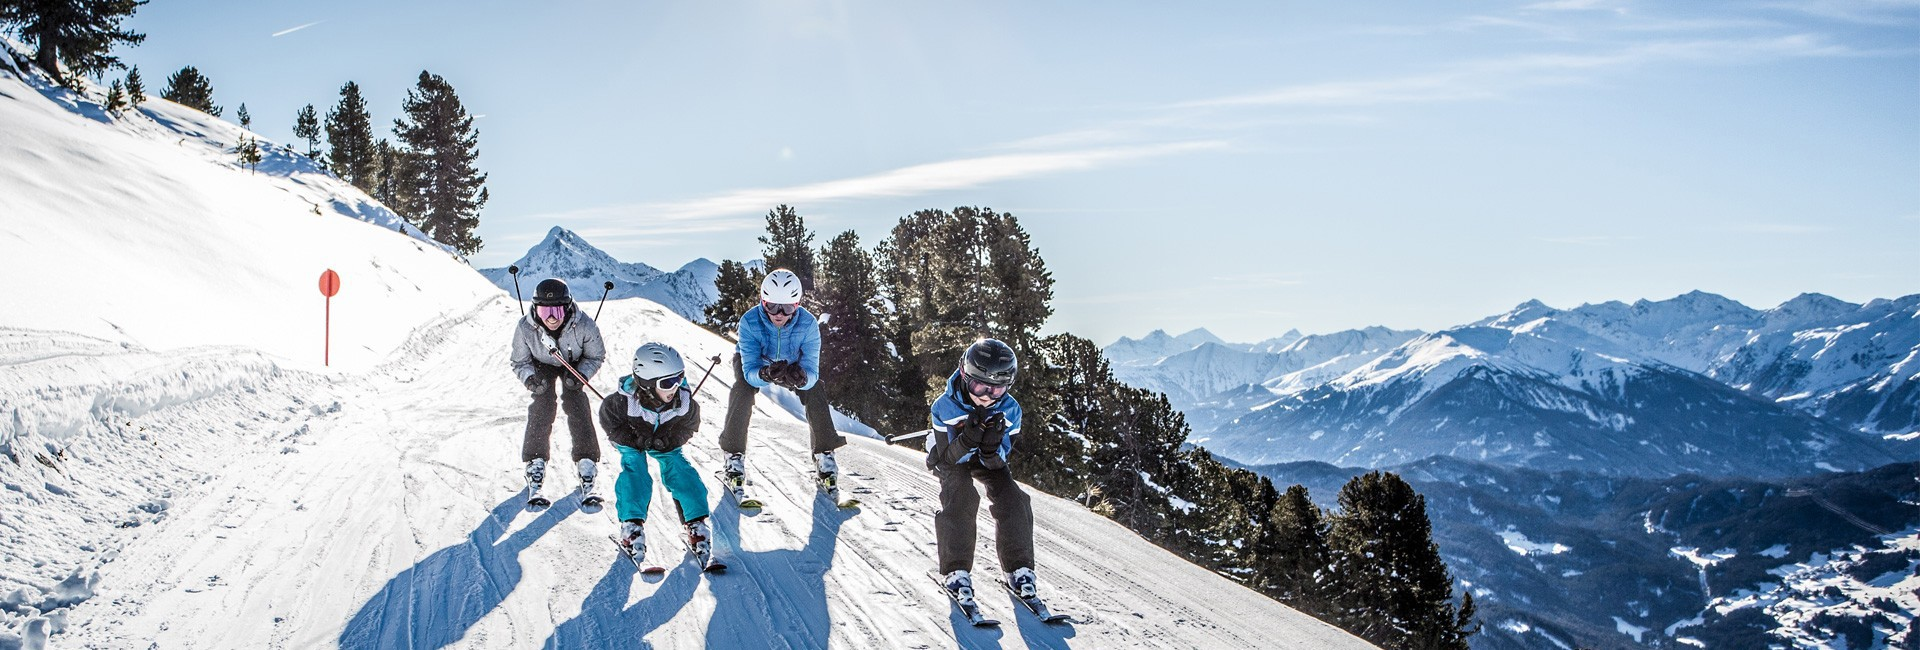 Family skiing in Pitztal at Hochzeiger